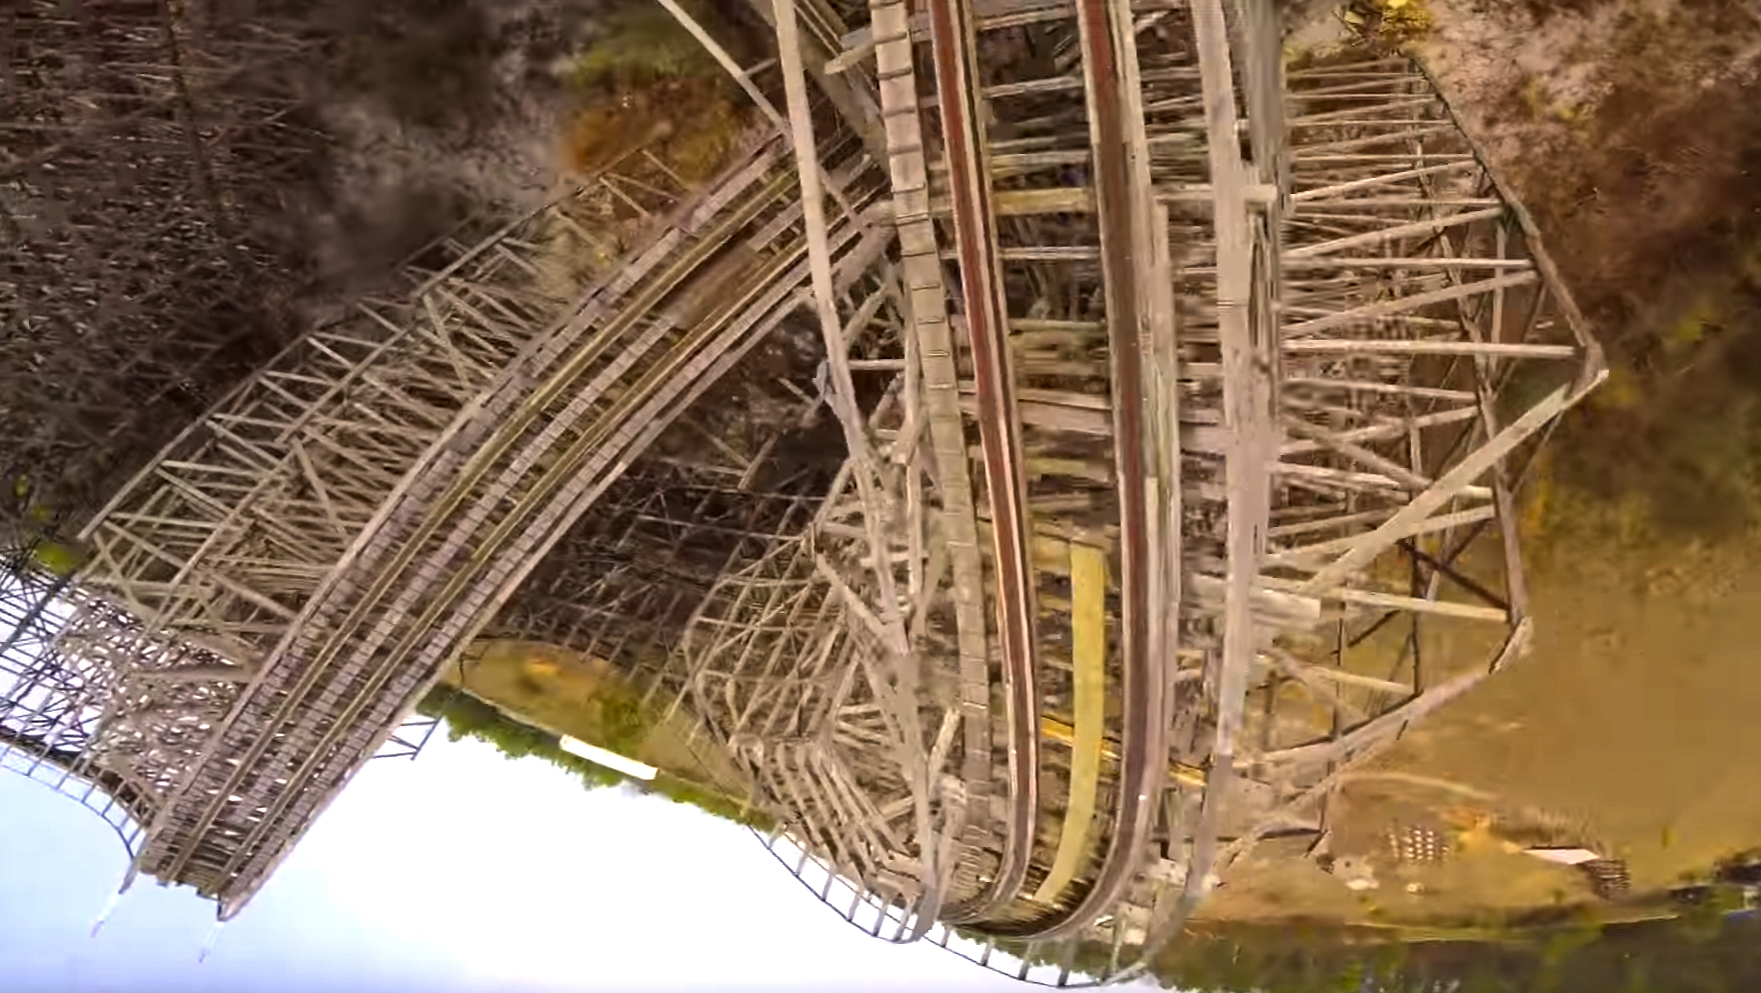 Racing Drone Rips Rollercoaster @ Alabama Splash Adventure